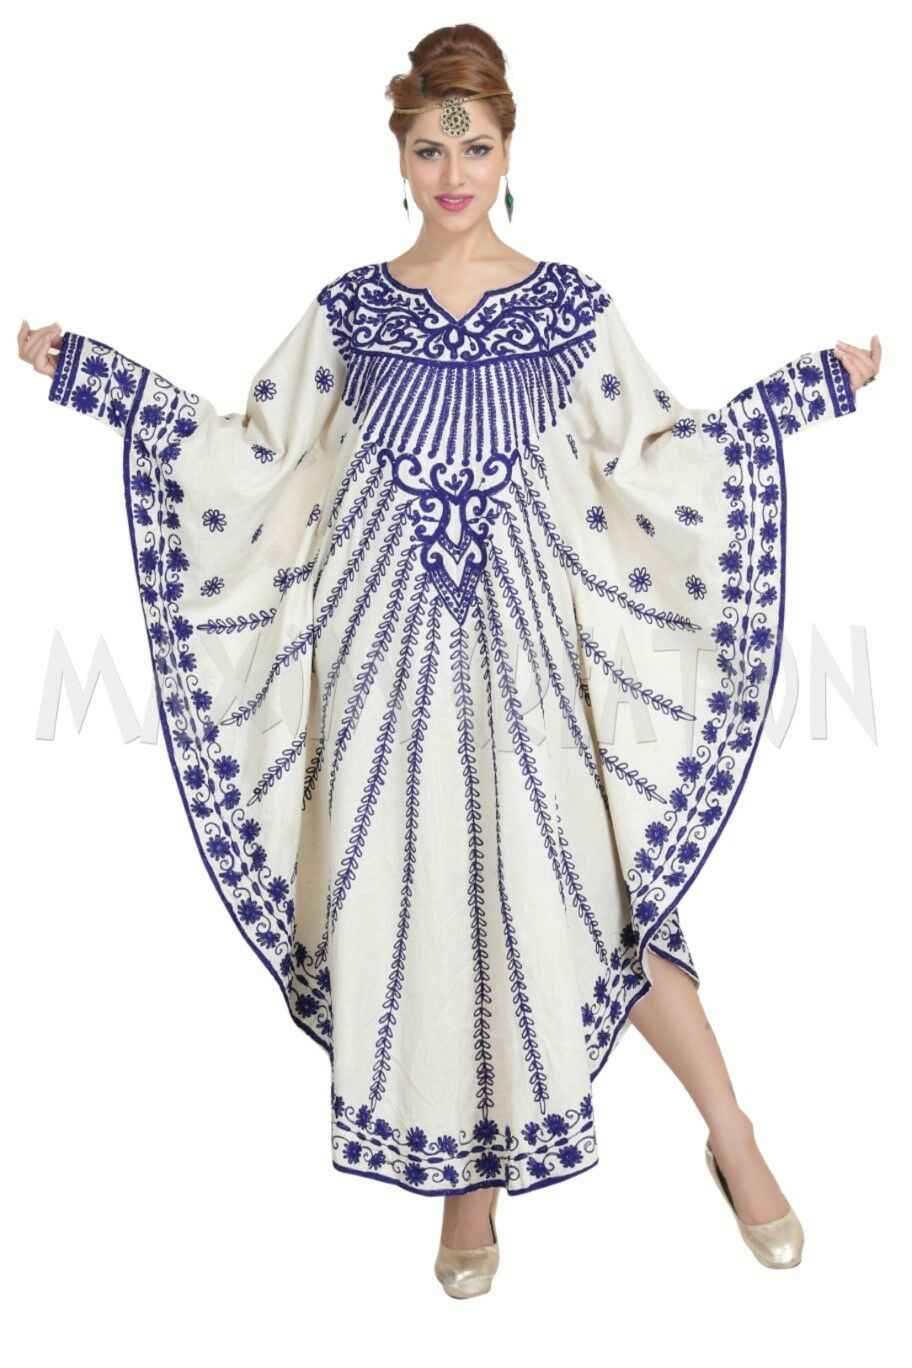 EXCLUSIVE MODERN DJELLABA PARTY WEAR ISLAMIC CAFTAN DRESS FOR WOMEN 6241